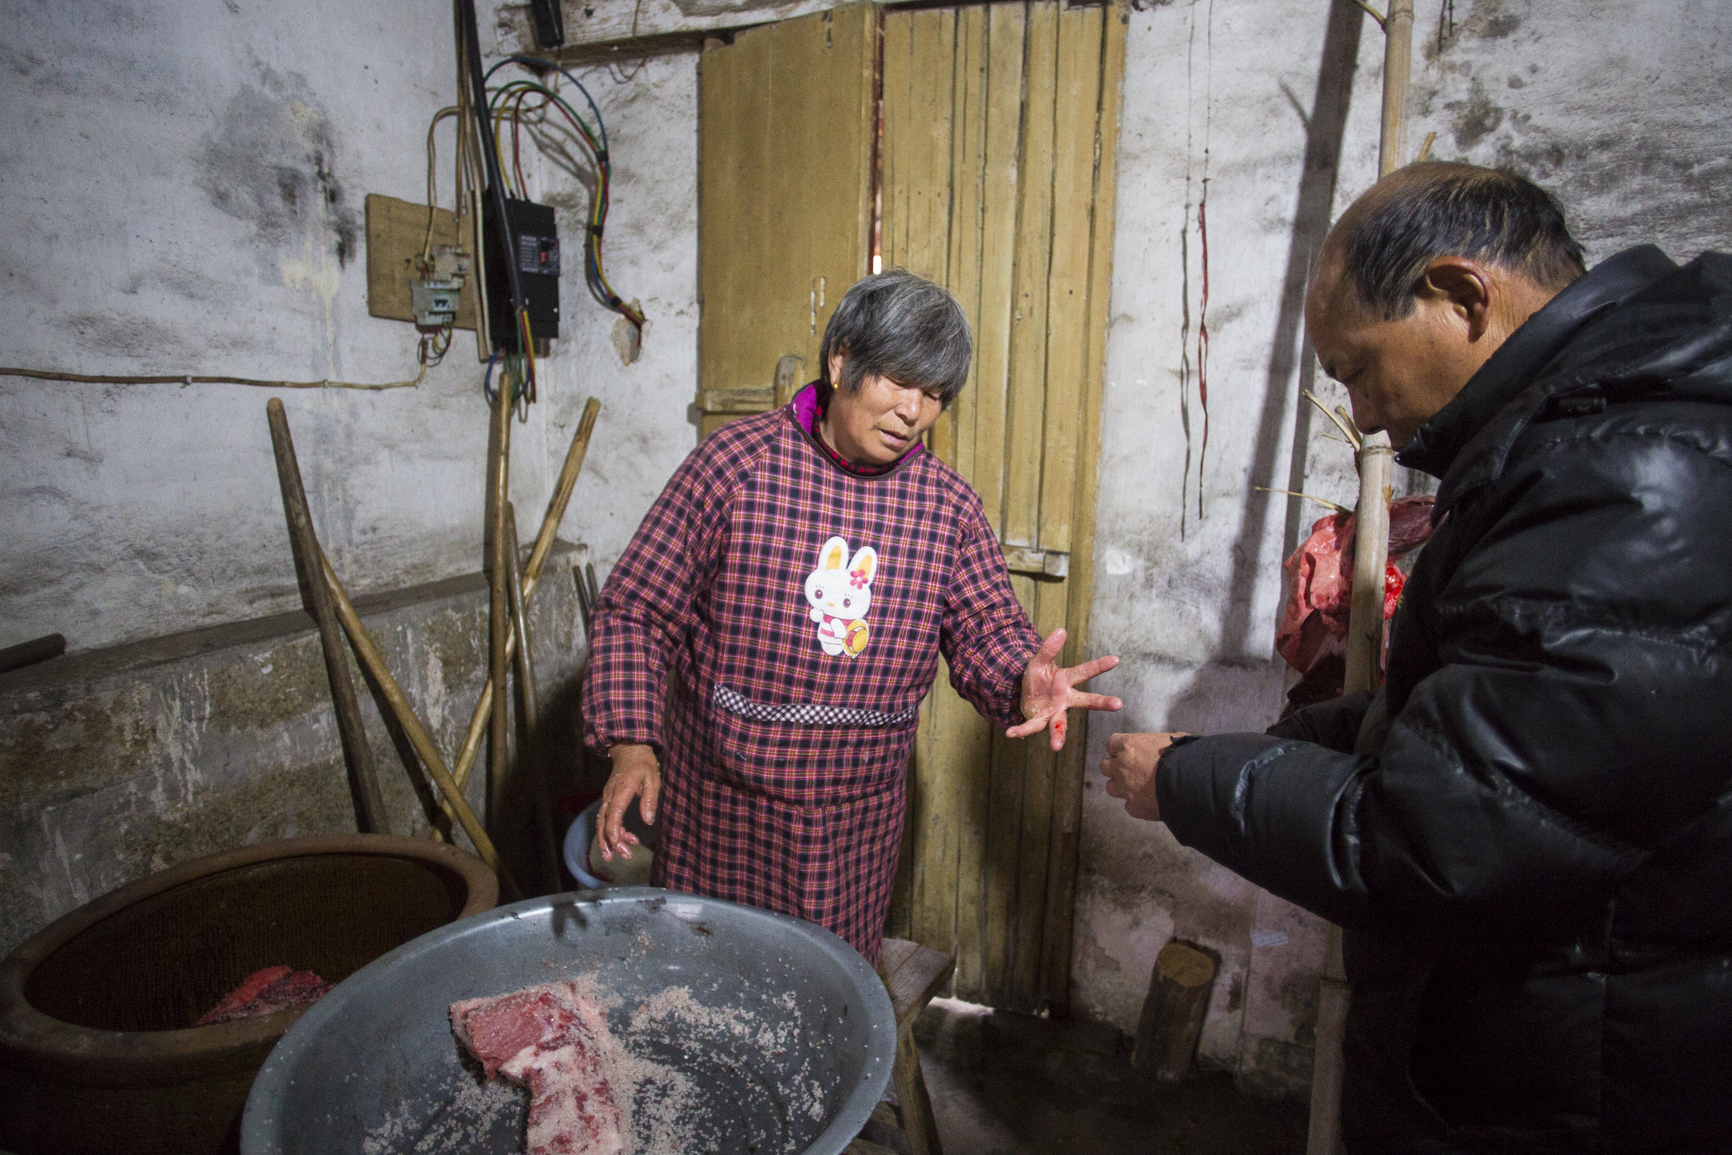 MG_1696 Su's wife hurt her finger while rubbing salt on the pork. Photo by Ann Wang